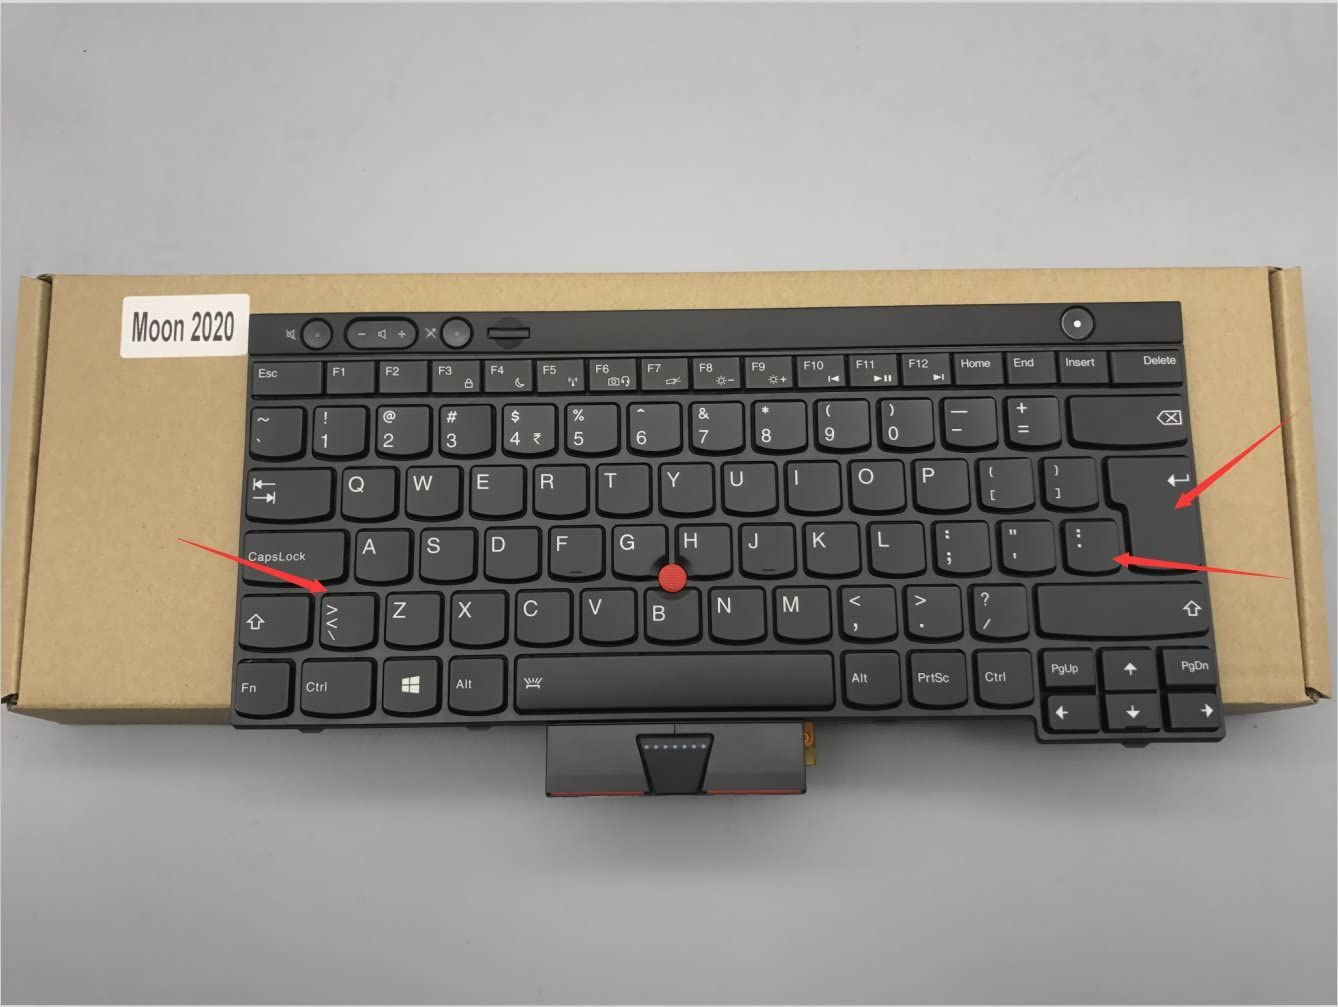 New for ibm Lenovo Backlit Keyboard FRU 04X1240 0C01923 for Thinkpad T530 T530i W530 T430 T430s T430i X230 X230i 0B36143 04W3137 27P0GE CS12L84 V130020CS1